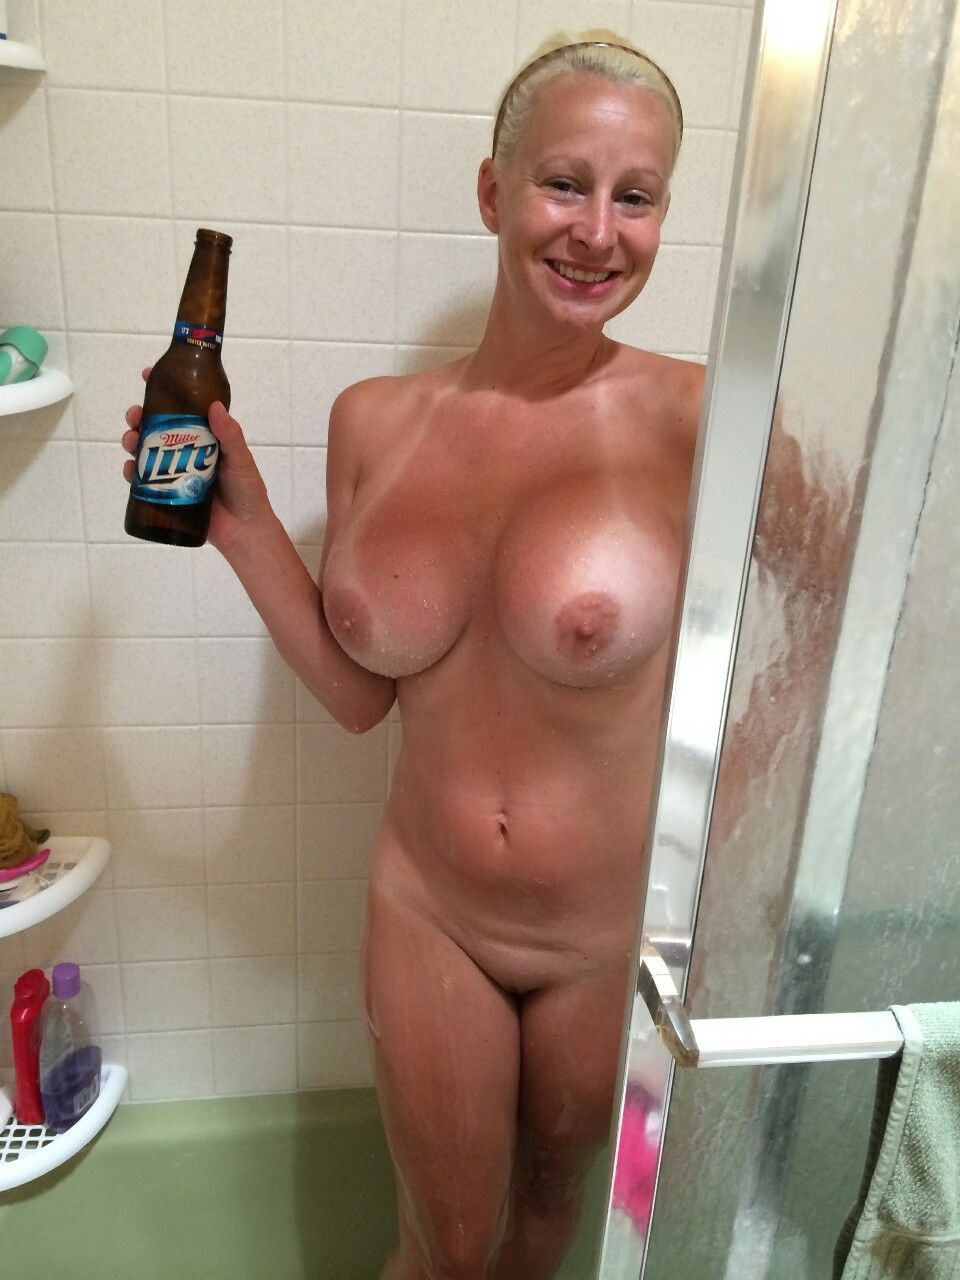 [Amateur MILF] She Loves A Shower Beer!